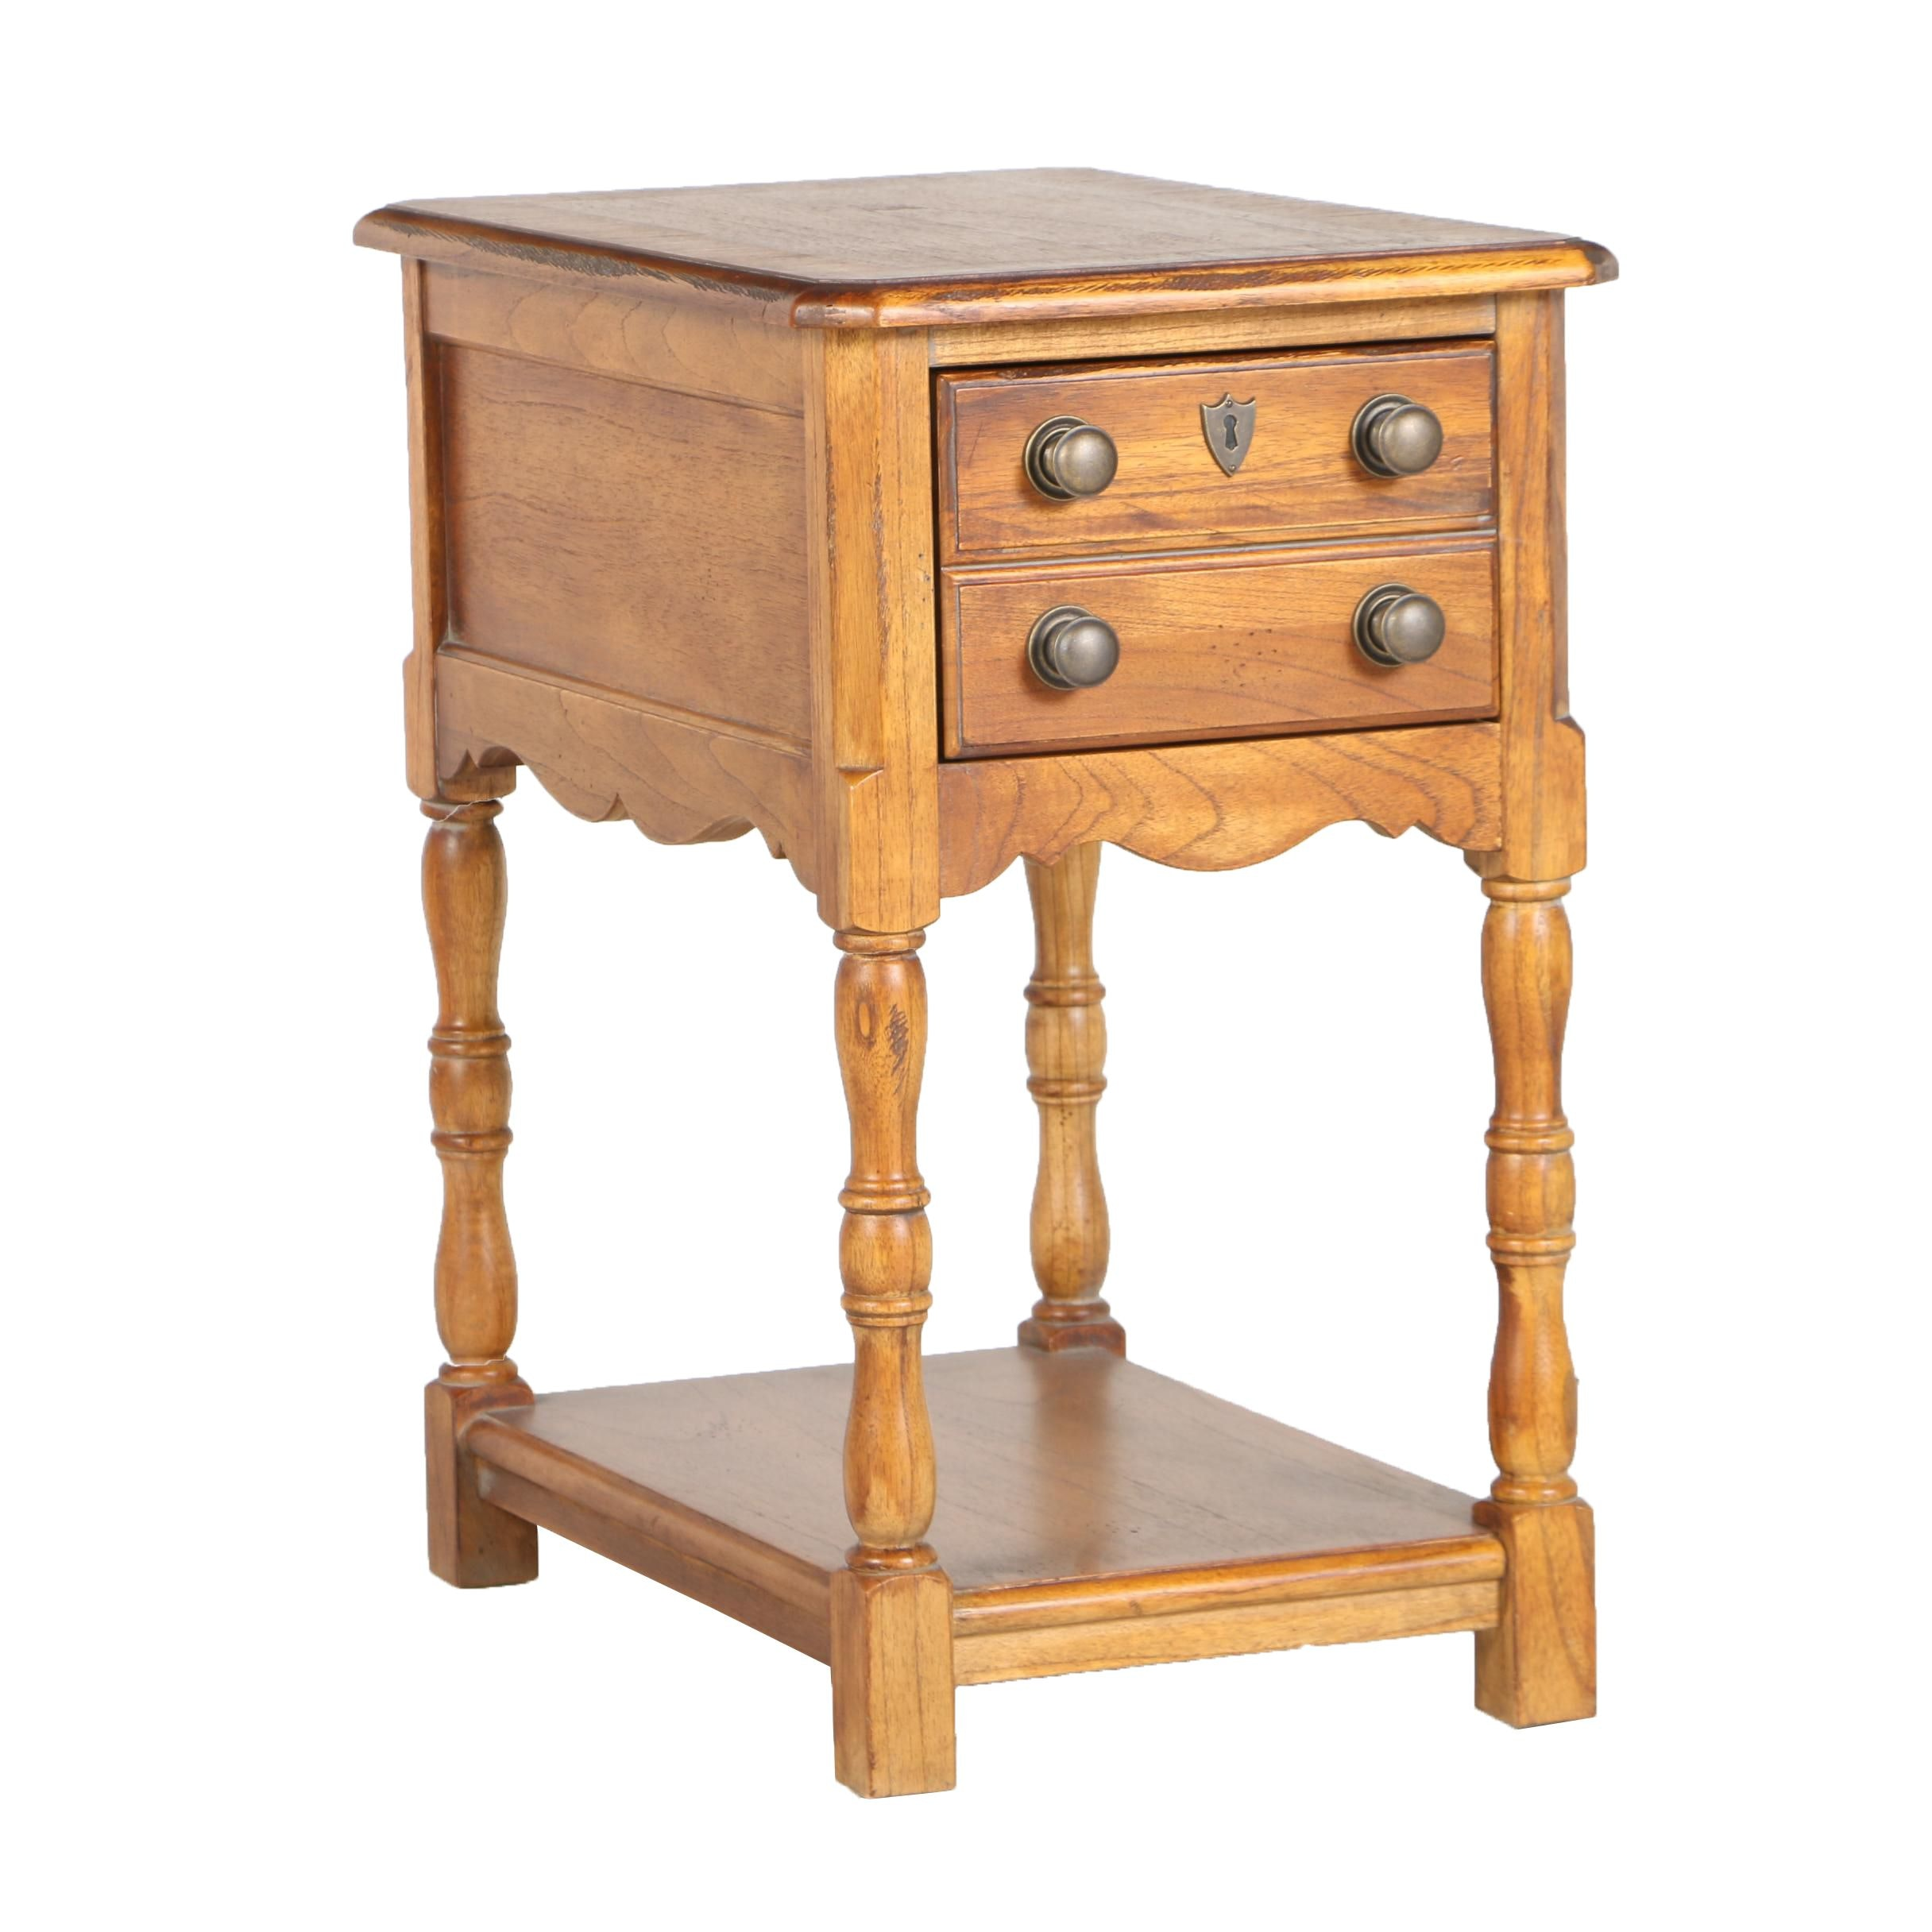 Contemporary William and Mary Style String-Inlaid Walnut Side Table by Hekman